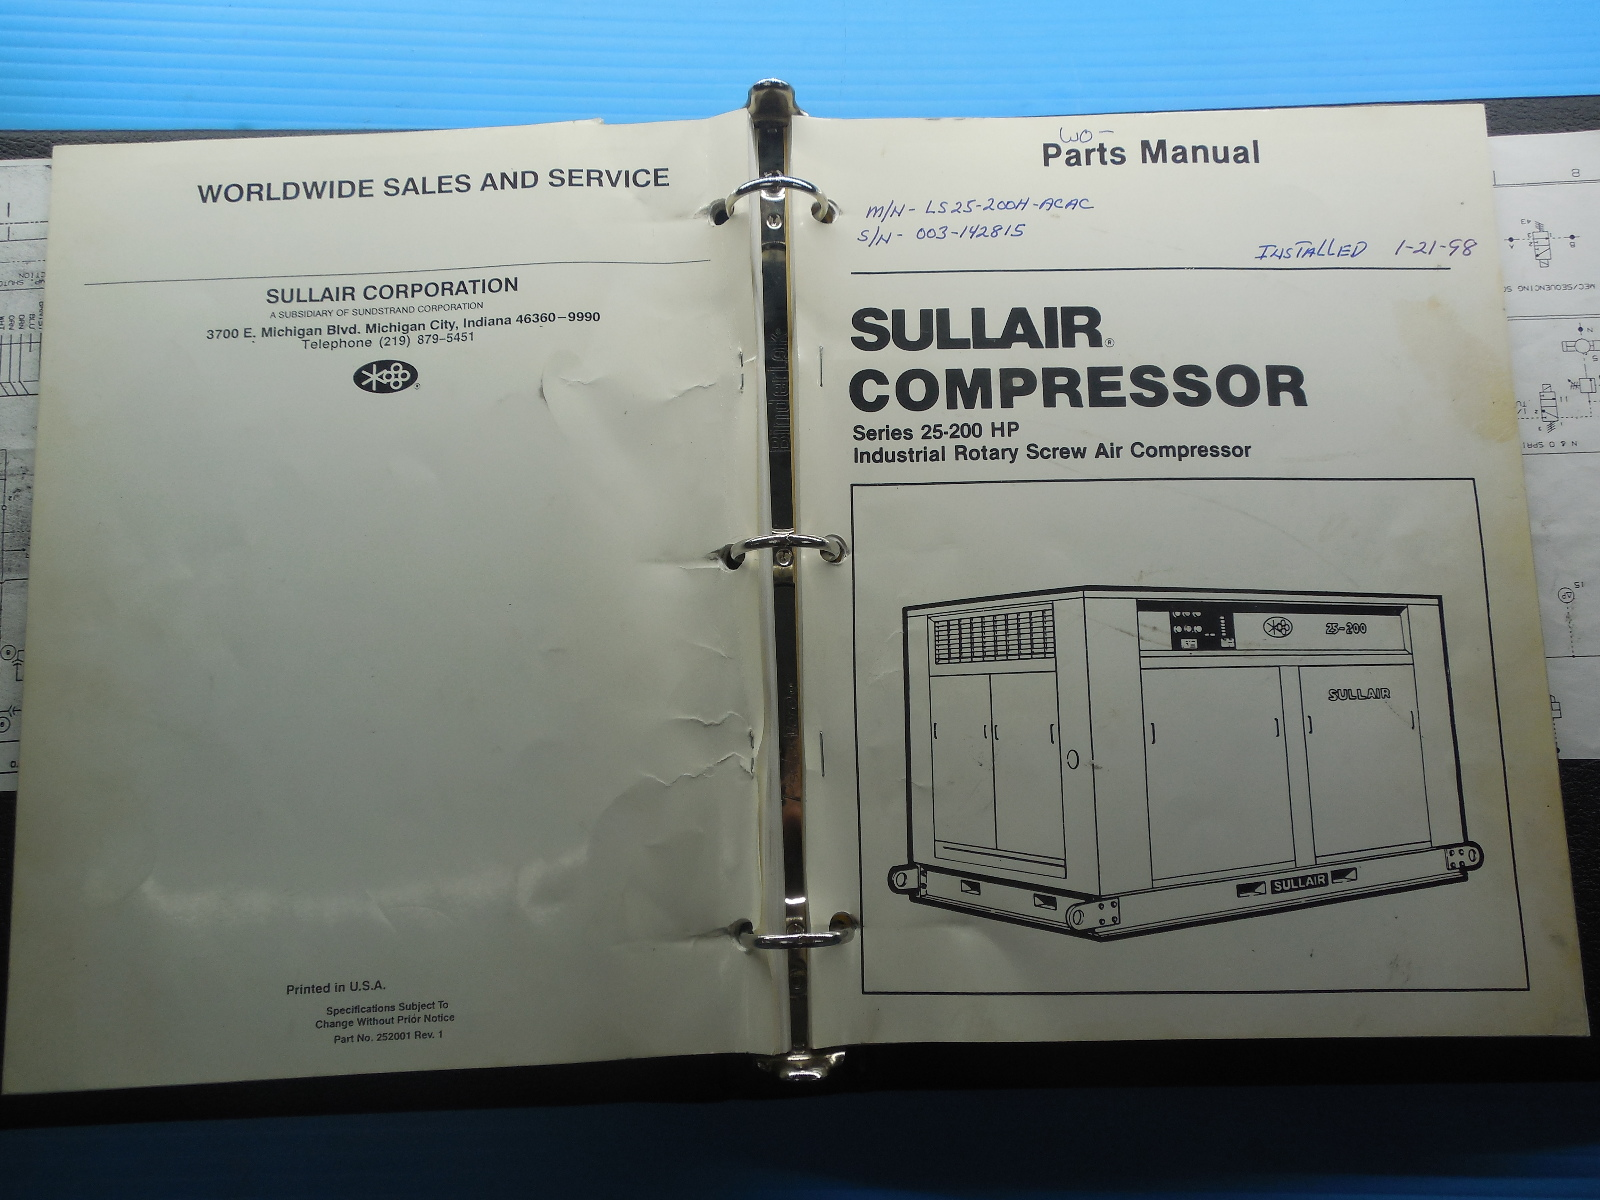 SULLAIR INDUSTRIAL ROTARY SCREW AIR COMPRESSOR OPERATOR'S MANUAL AND PARTS  LIST